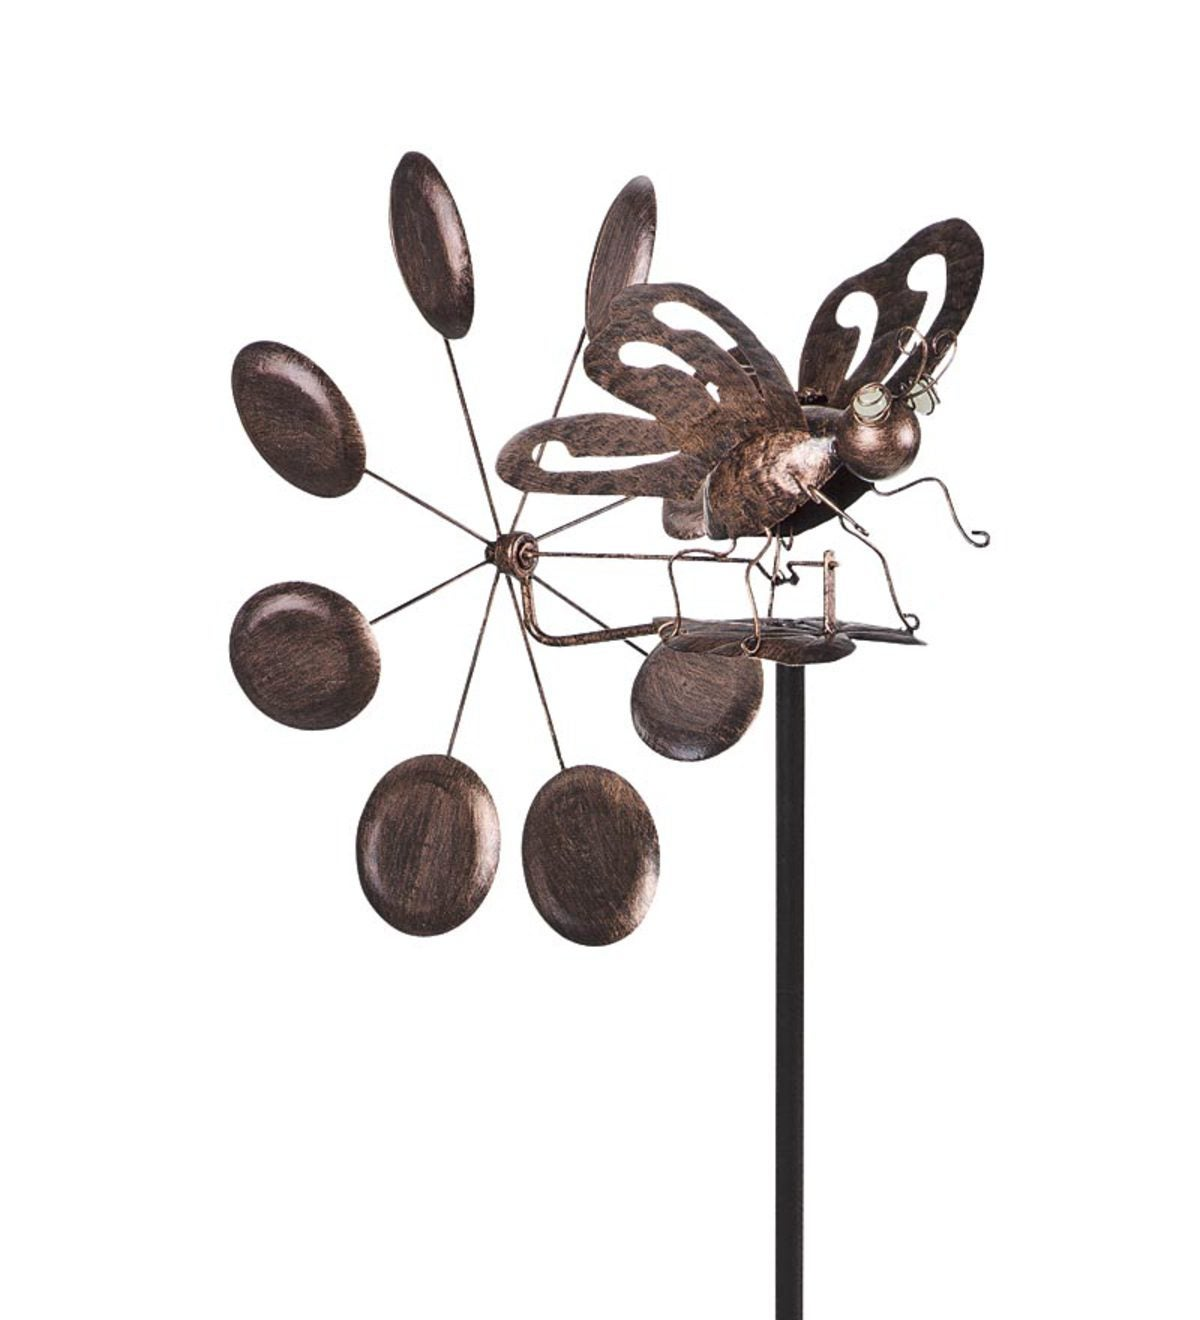 Solar Dragonfly or Butterfly Wind Spinner/Whirligig - Butterfly